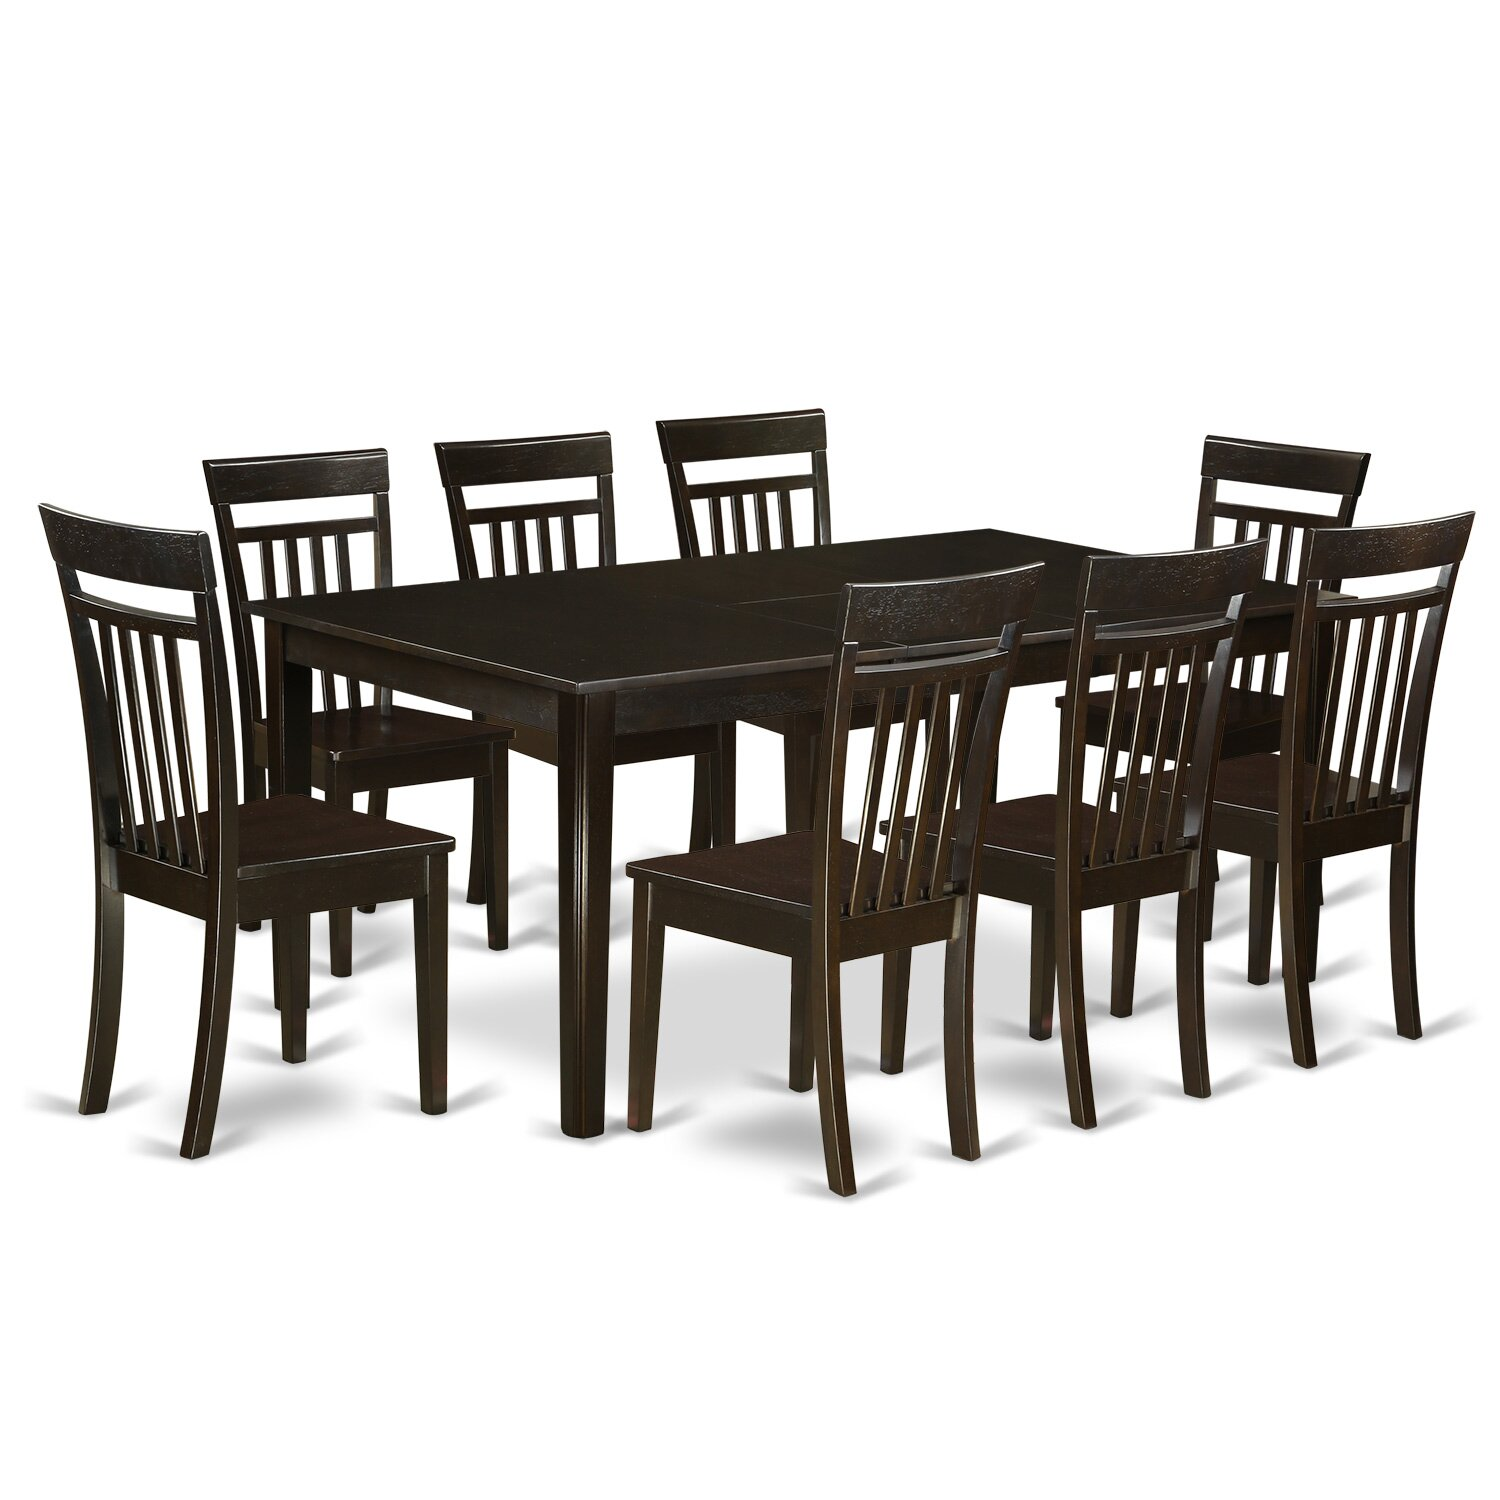 East west henley 9 piece dining set reviews wayfair for 9 piece dining room sets square